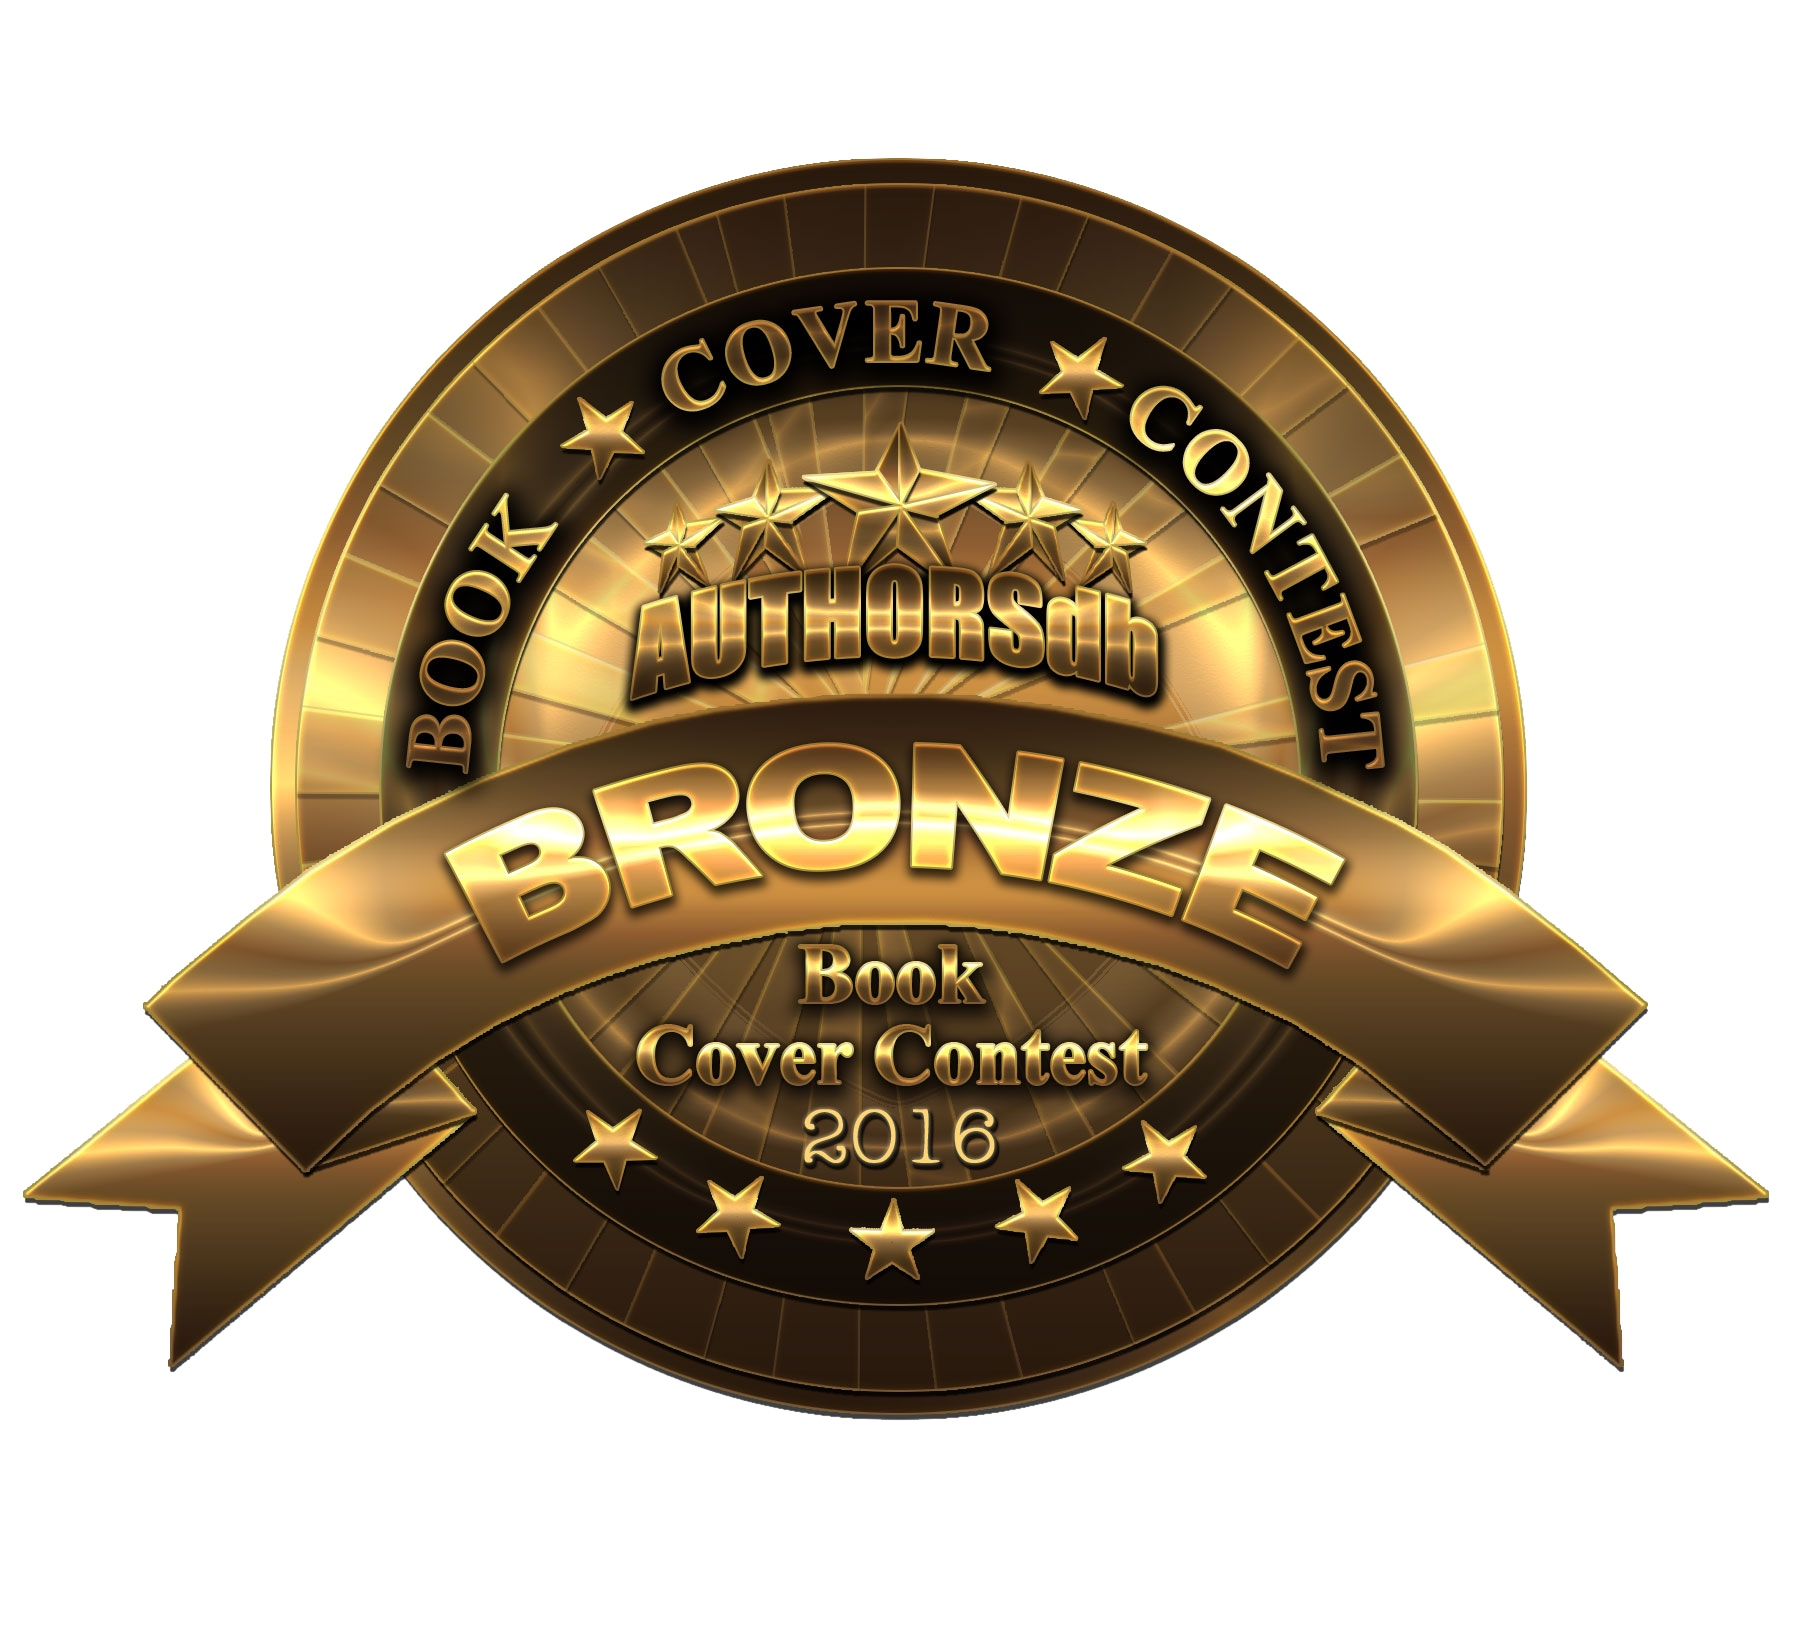 Bronze for best book cover in the Authordb 2016 cover content